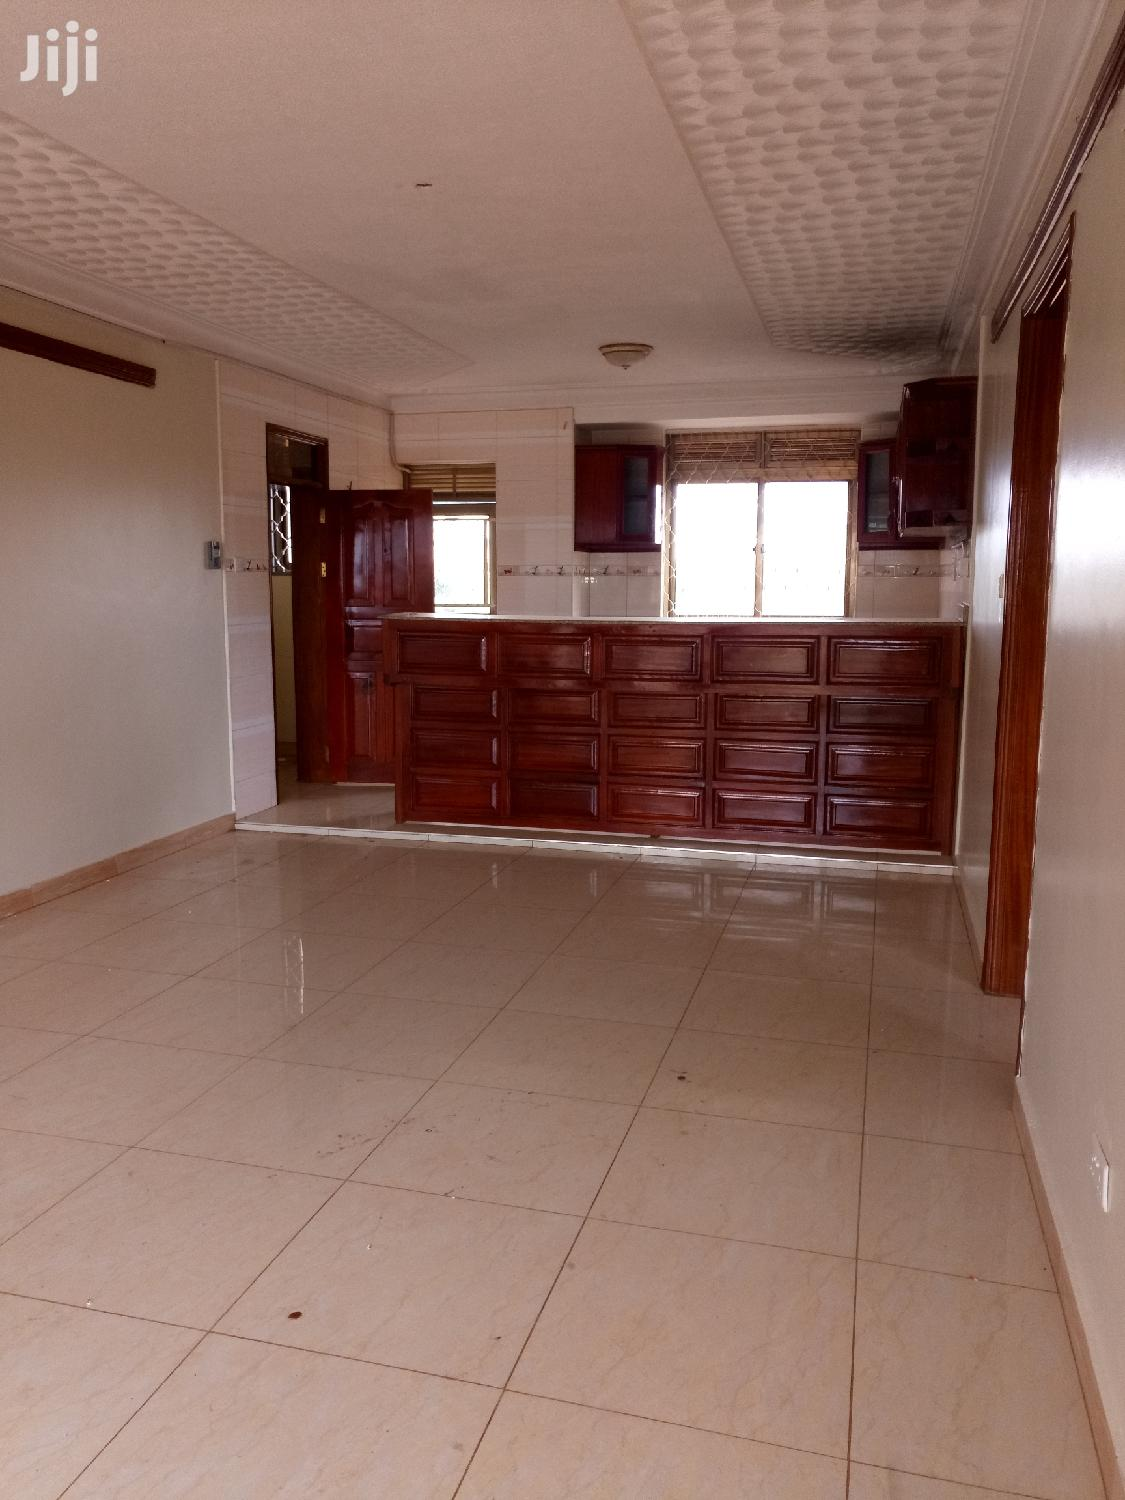 Bukoto Apartment House for Rent | Houses & Apartments For Rent for sale in Kampala, Central Region, Uganda